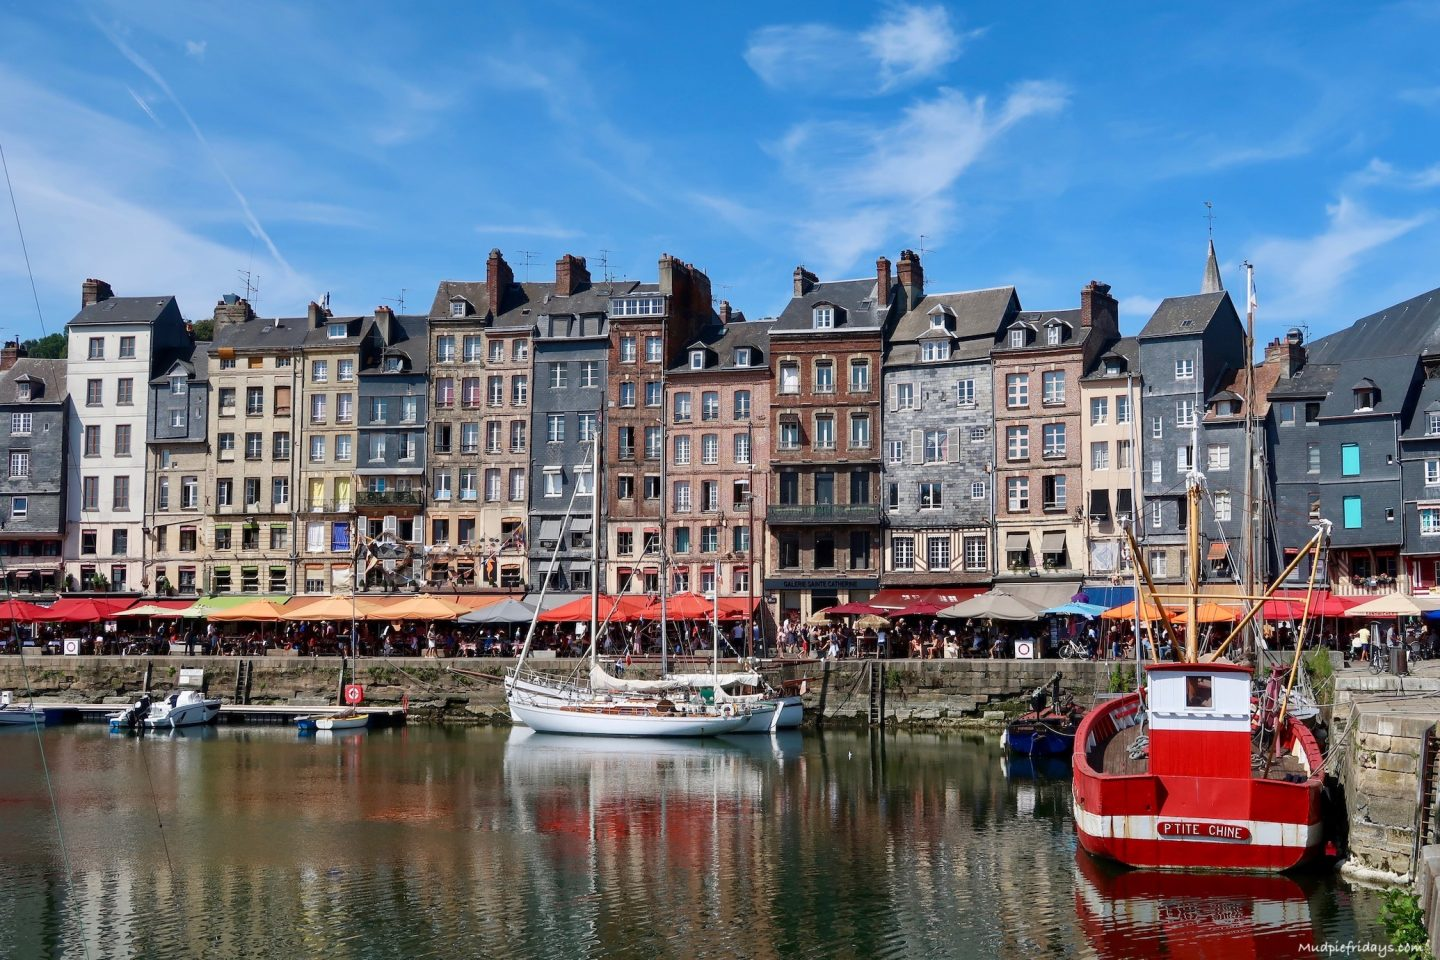 Picture Postcard – Honfleur Normandy